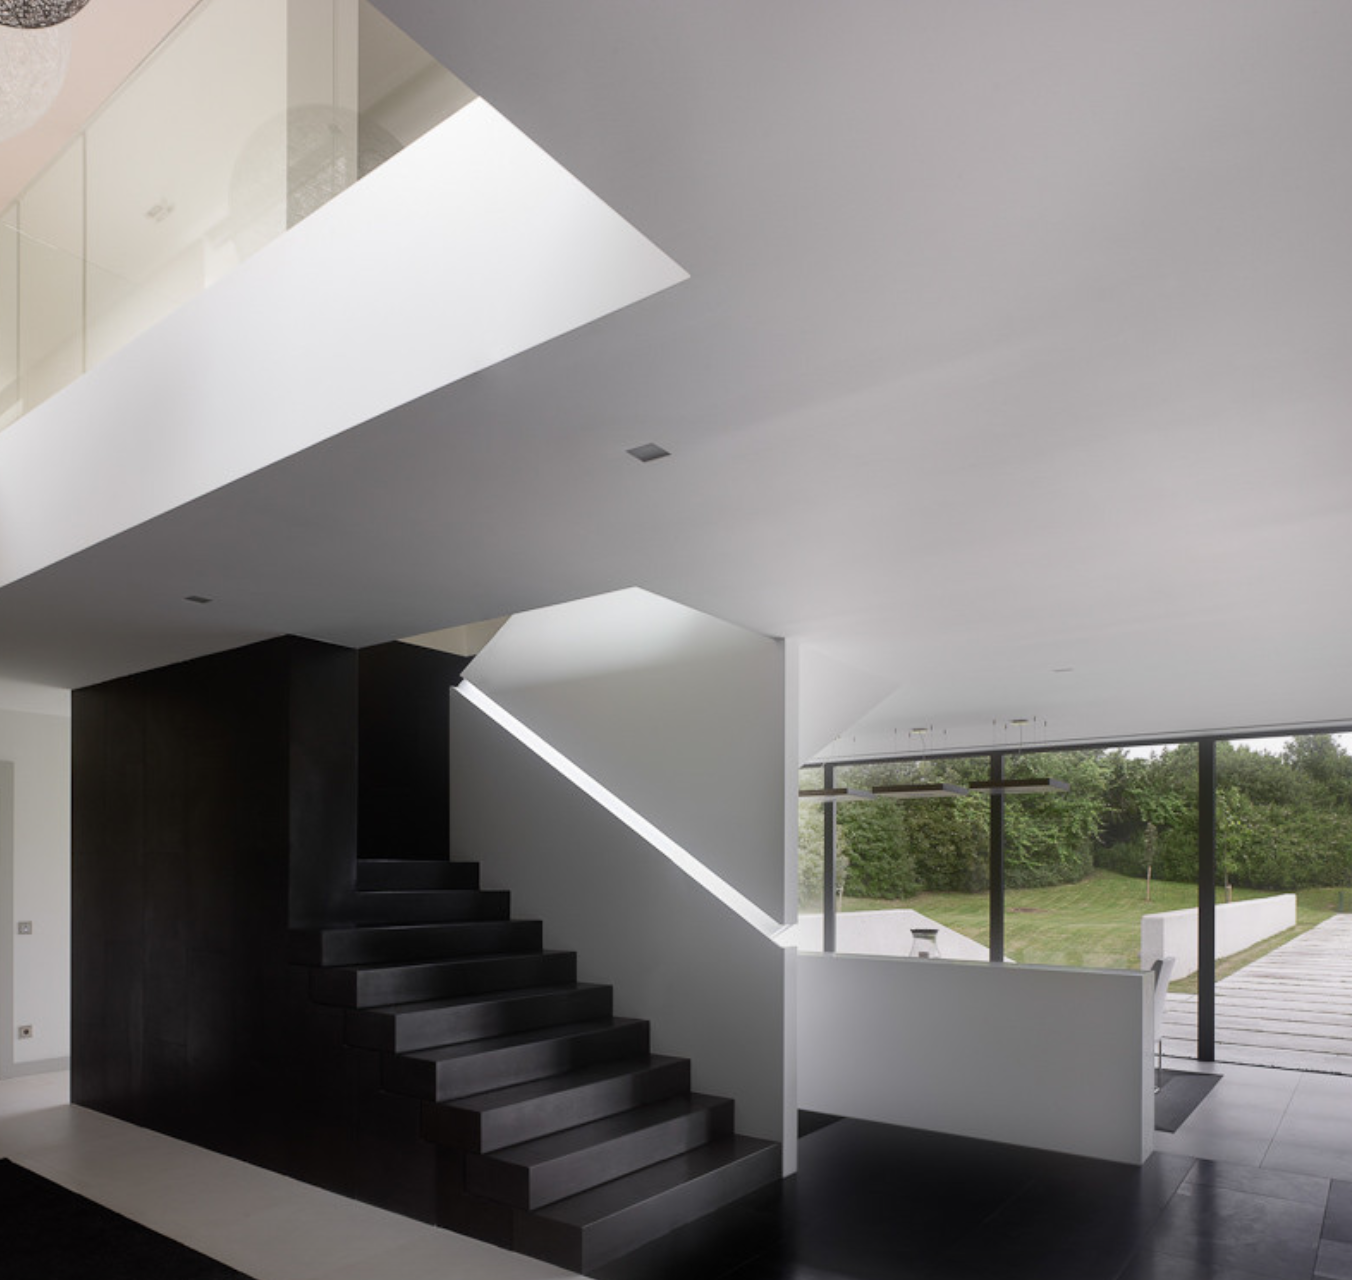 By The Use Of A Color Change On The Staircase, It Adds To The Modern Black  And White Feel.